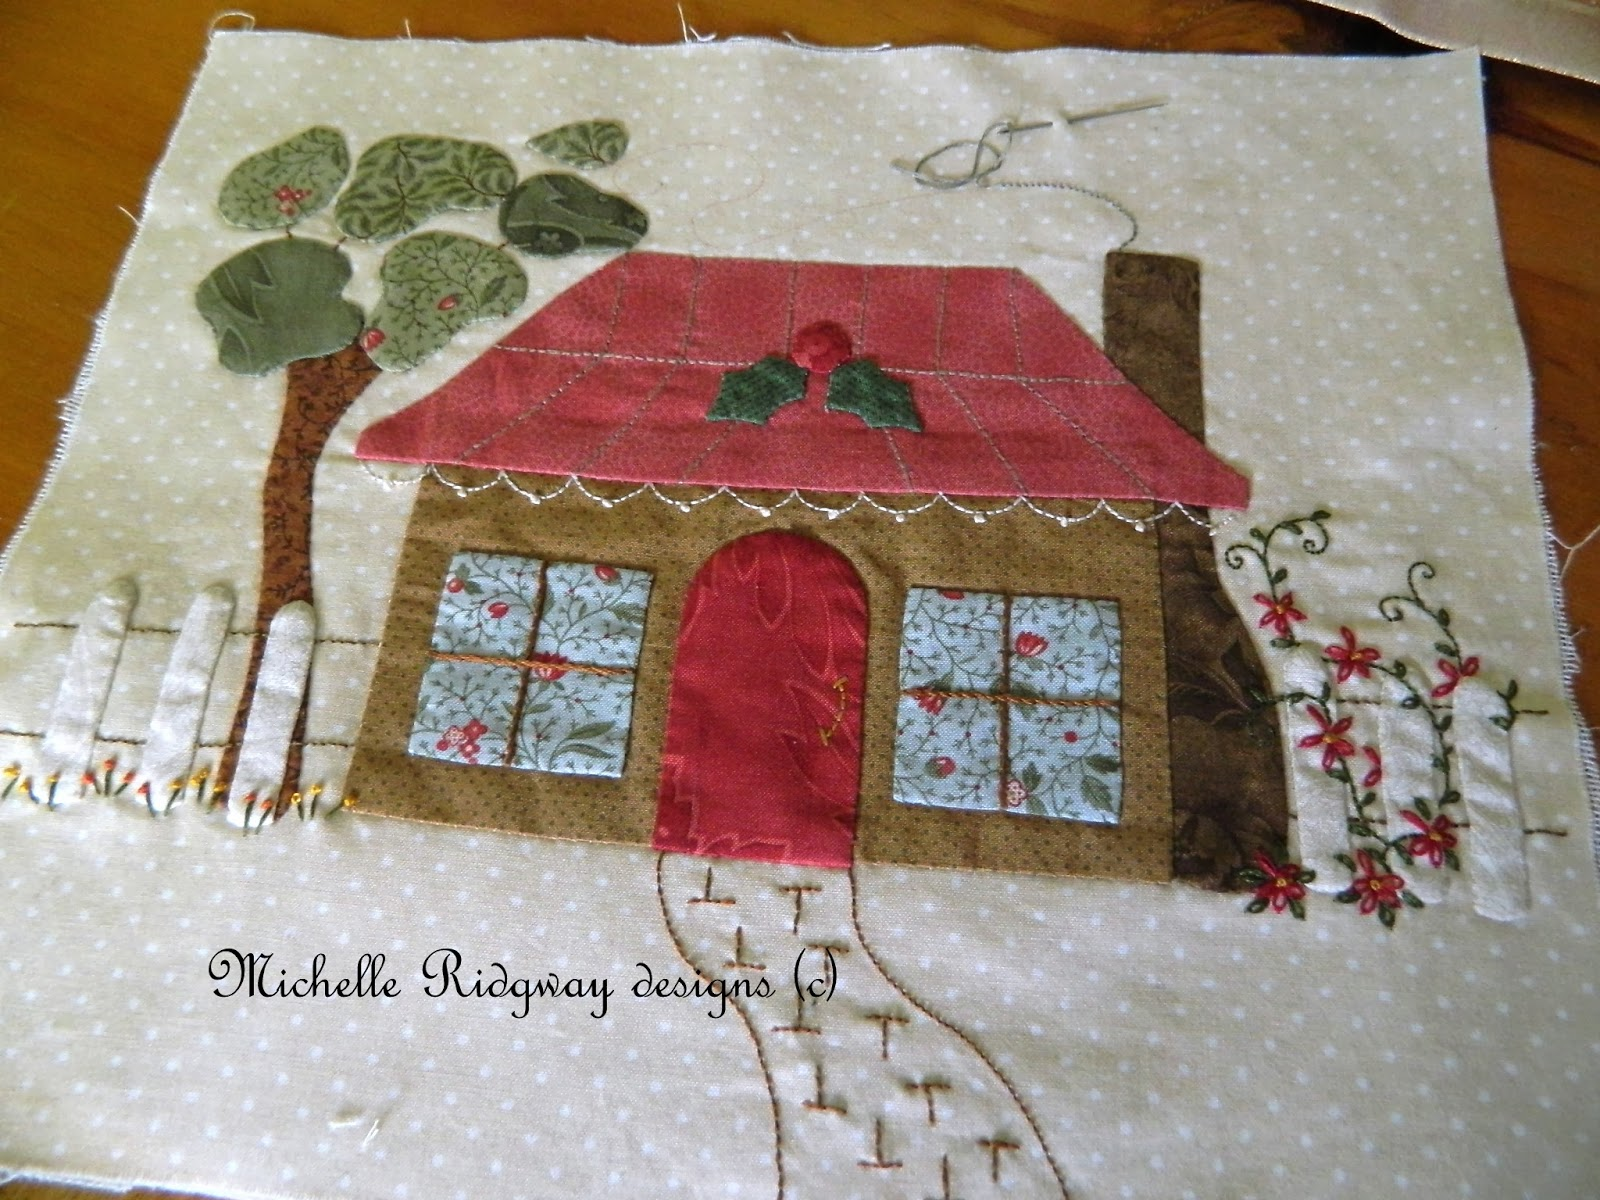 Michelle ridgway exciting news fnwf - Cojines de patchwork ...